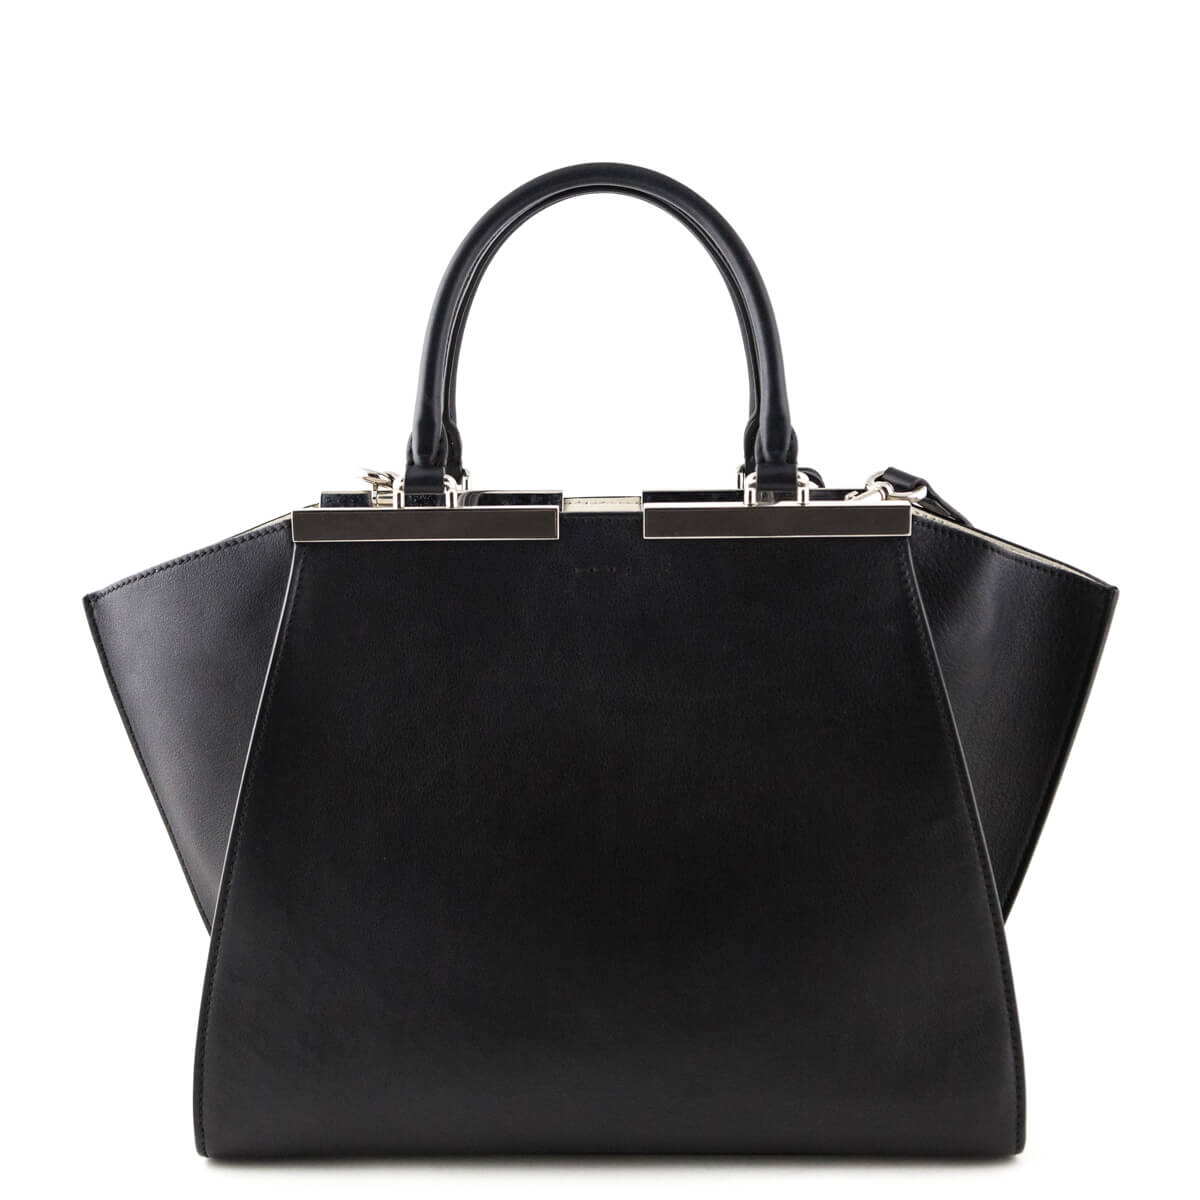 716928f824e4 ... Fendi Black Calfskin 3 Jours Tote - LOVE that BAG - Preowned Authentic  Designer Handbags ...